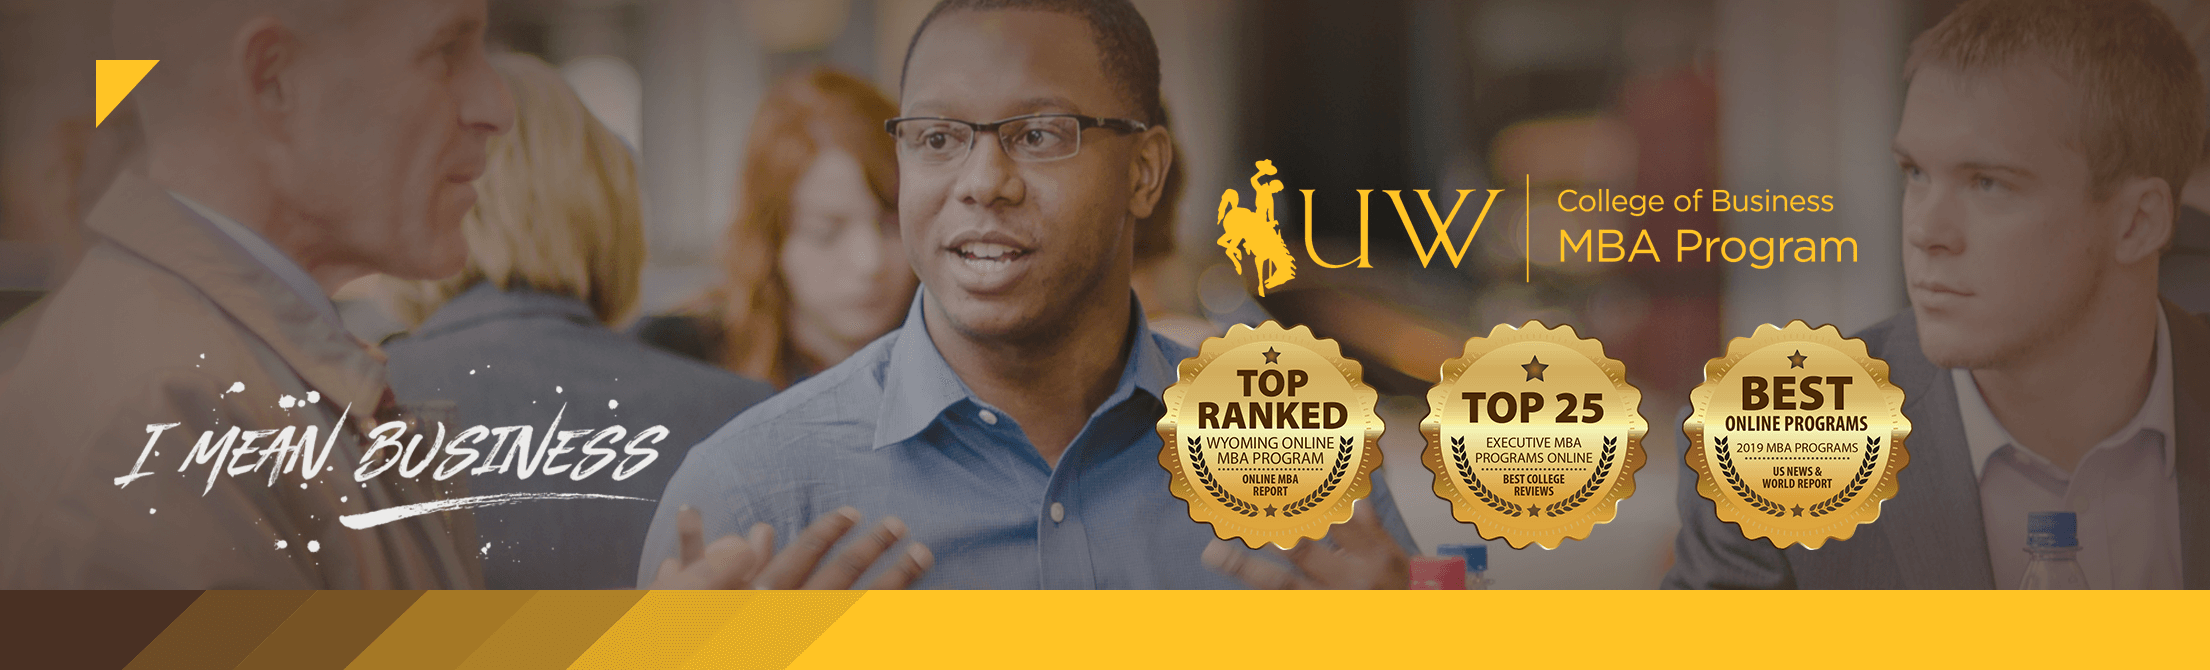 MBA Program | College of Business | University of Wyoming